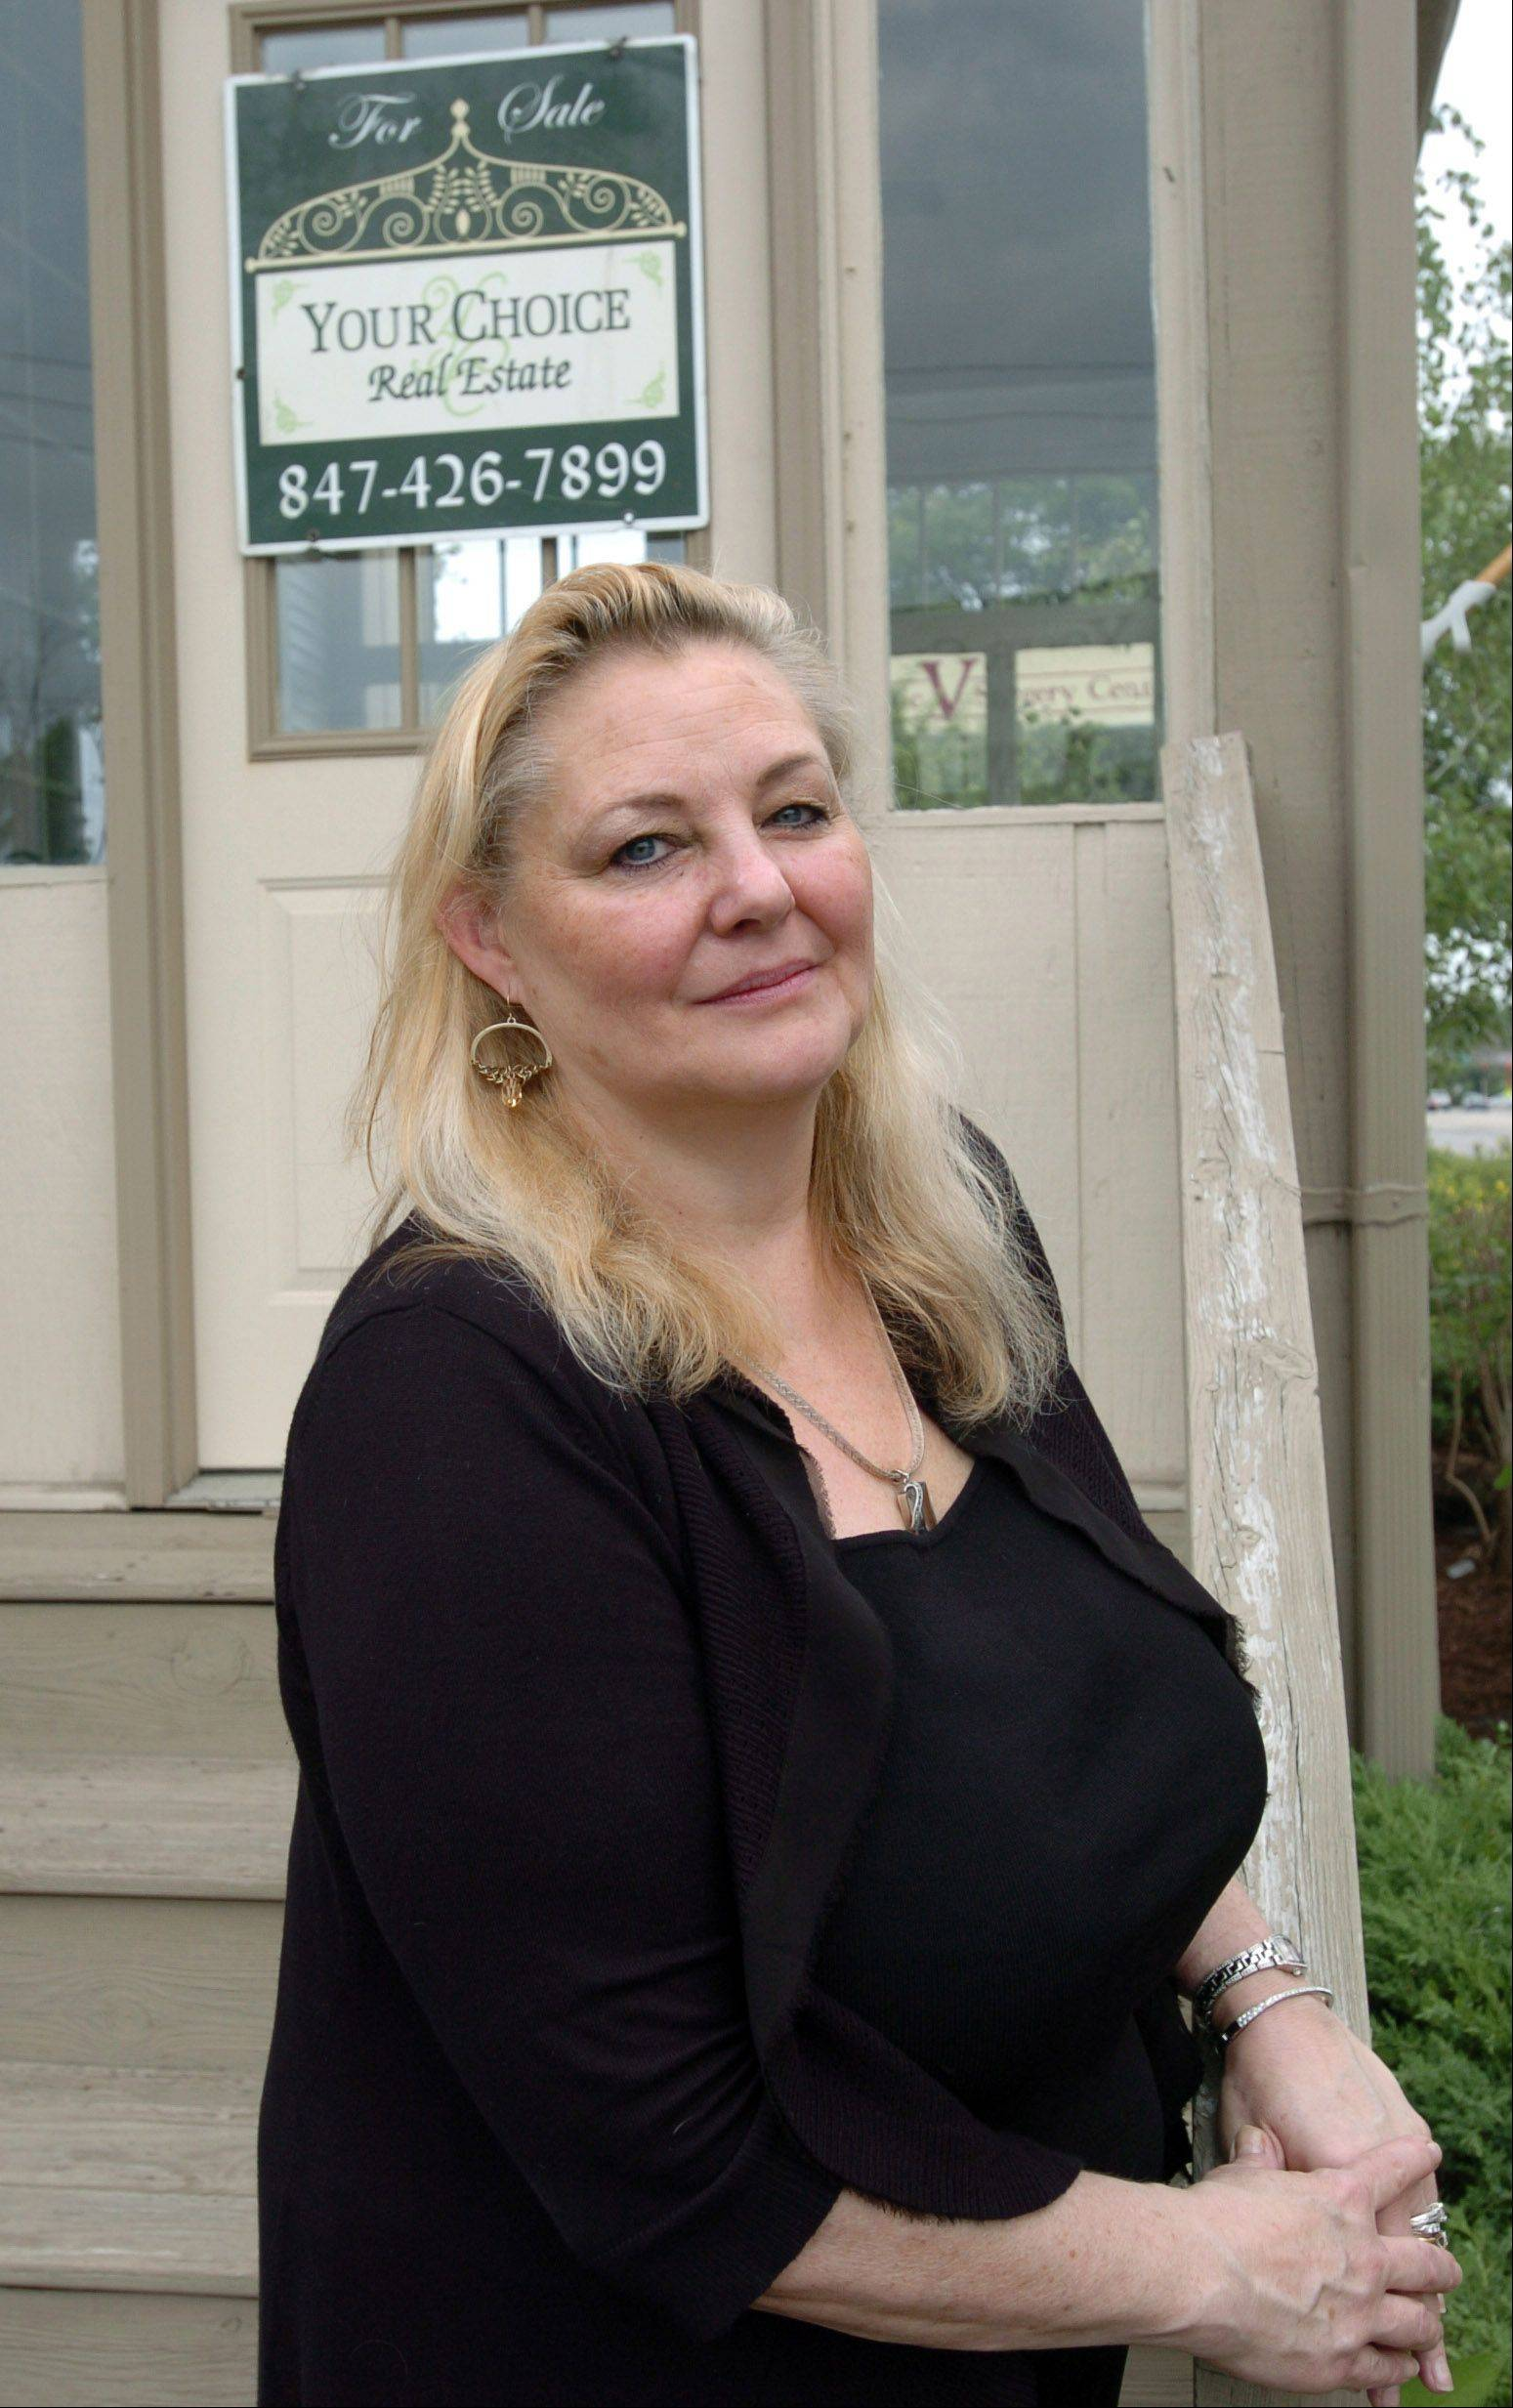 Fran Dugo of Your Choice Real Estate Services in West Dundee says the economy has created a large demand for rental homes.